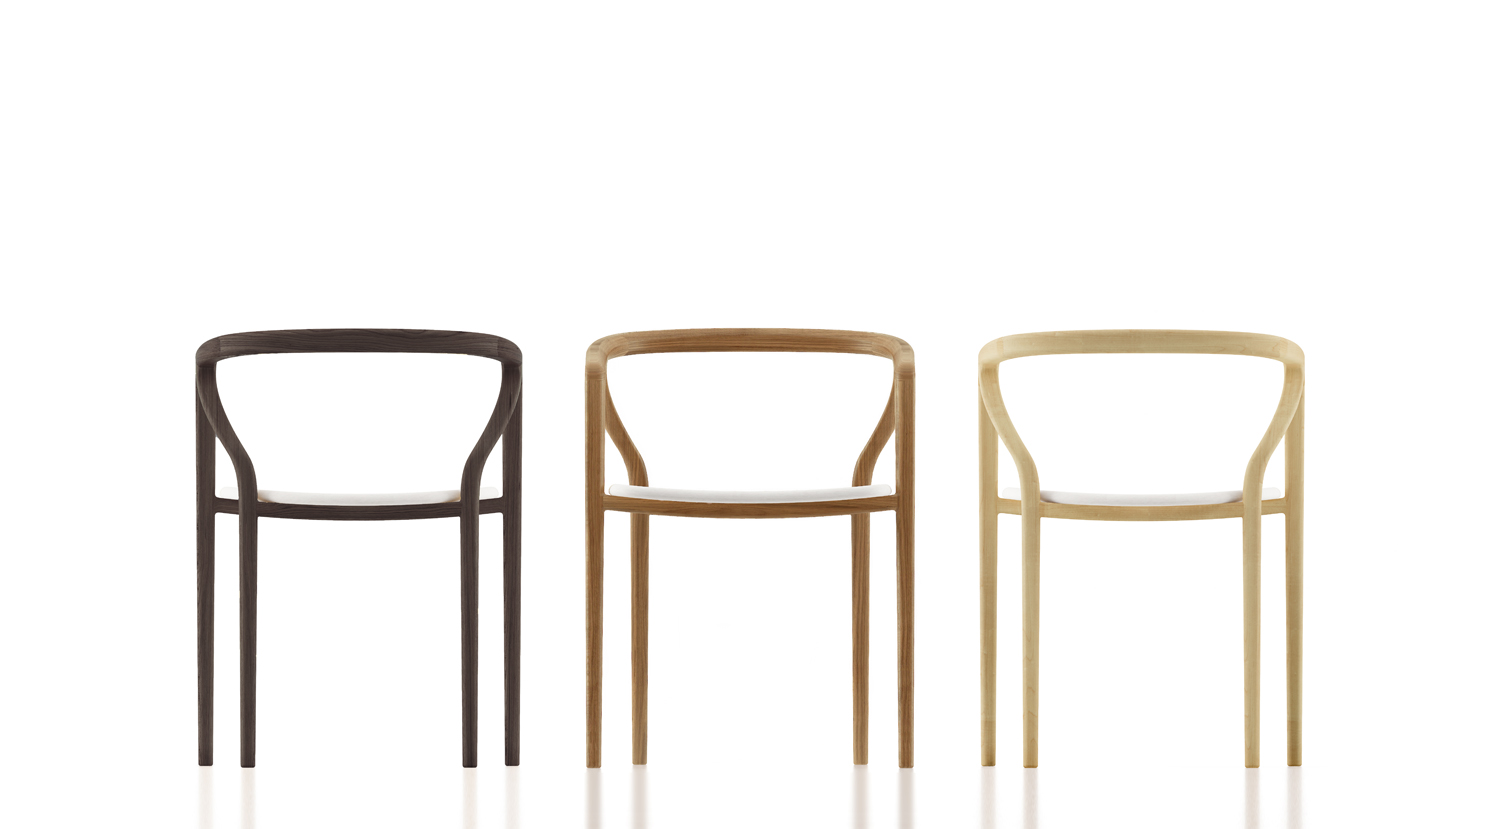 Thelos Olea chair family prelaunch